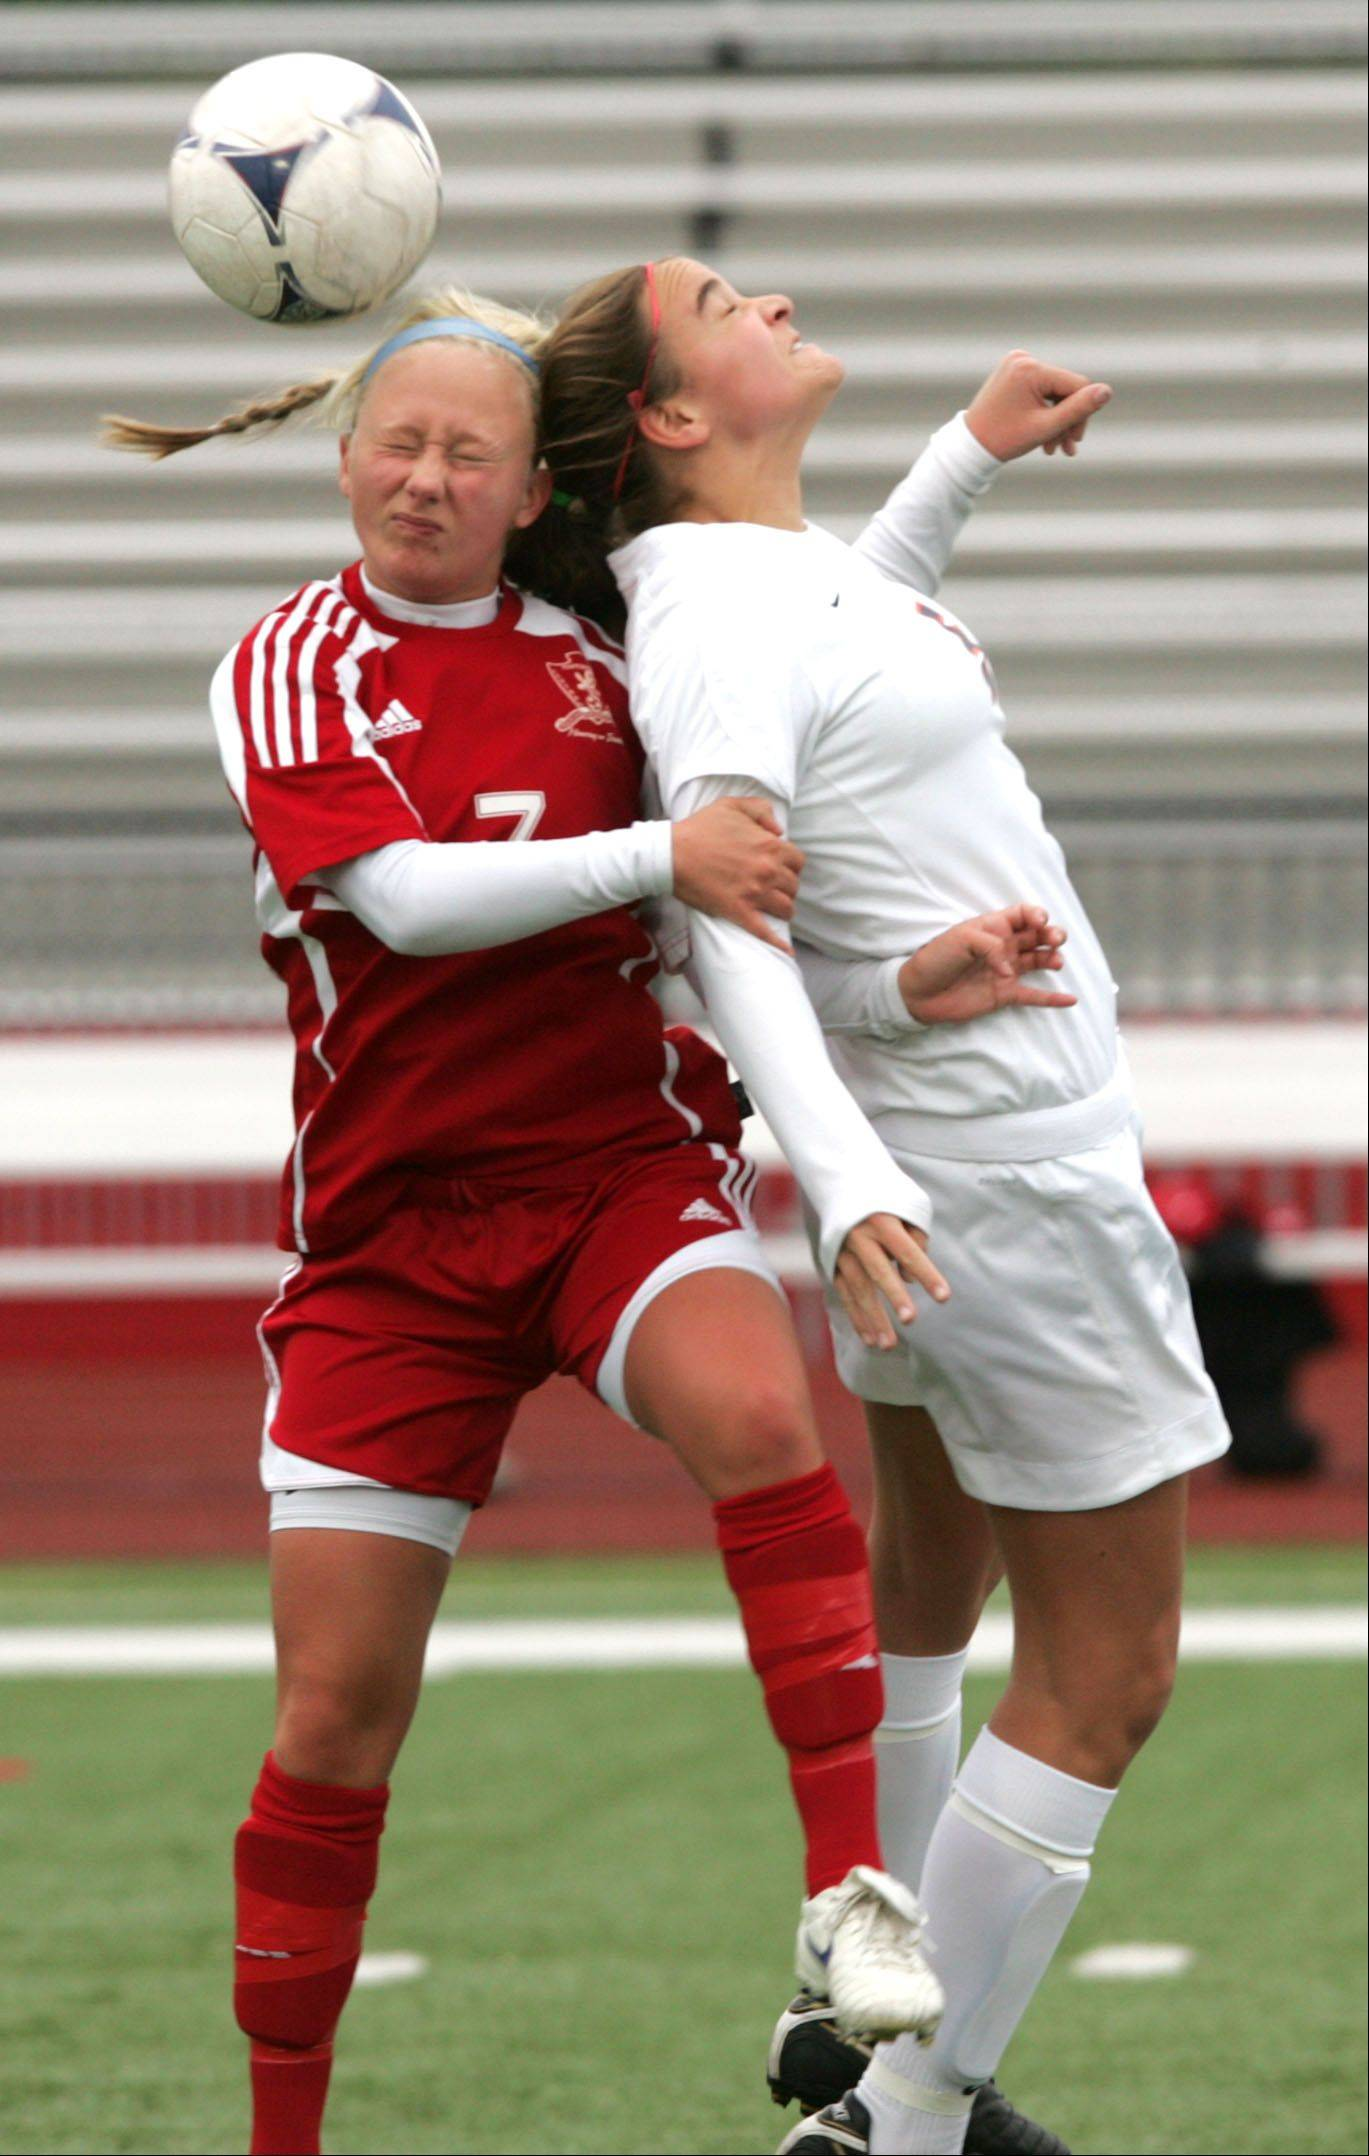 Naperville Central's Carly Franzese, left, battles Naperville North's Abbie Boswell, right, during the 2012 Girls Soccer Naperville Invitational.